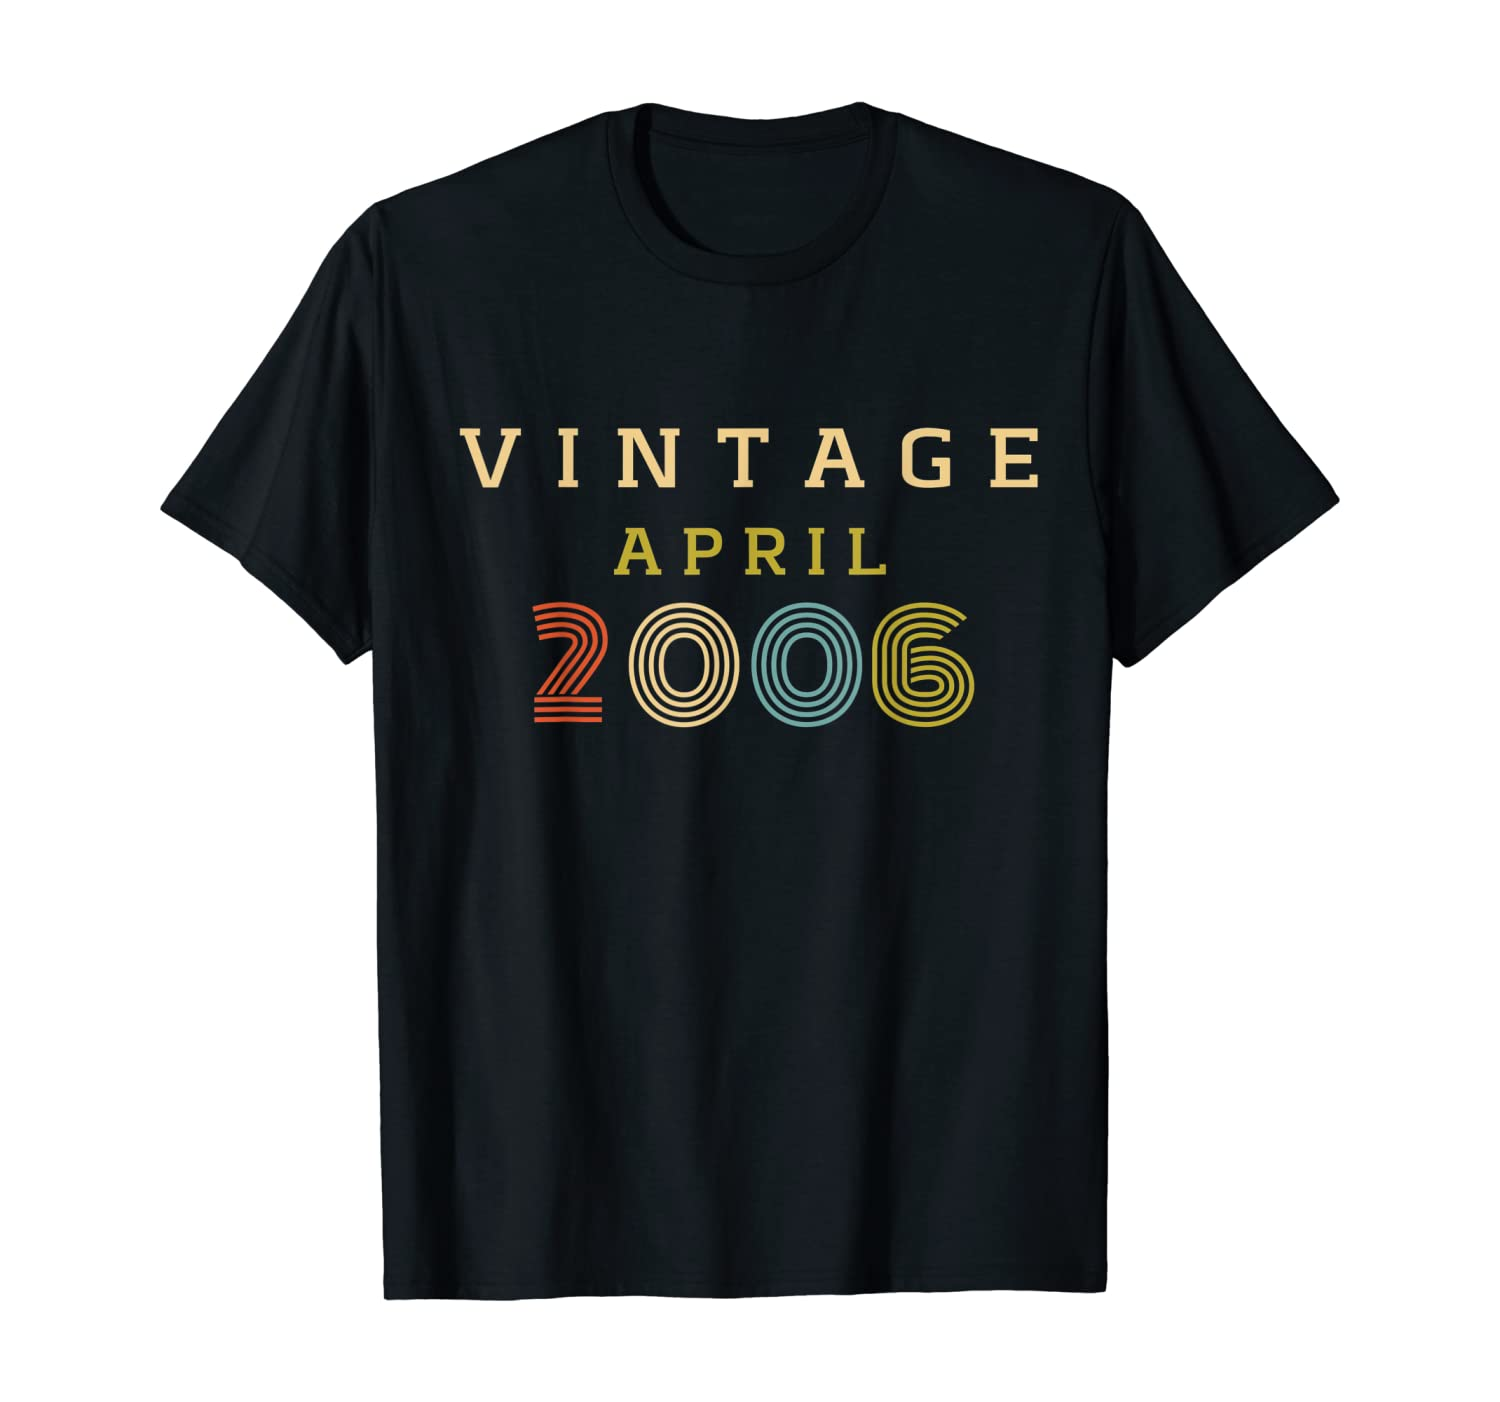 14 Year Old Birthday Gift Vintage 2006 April T-Shirt